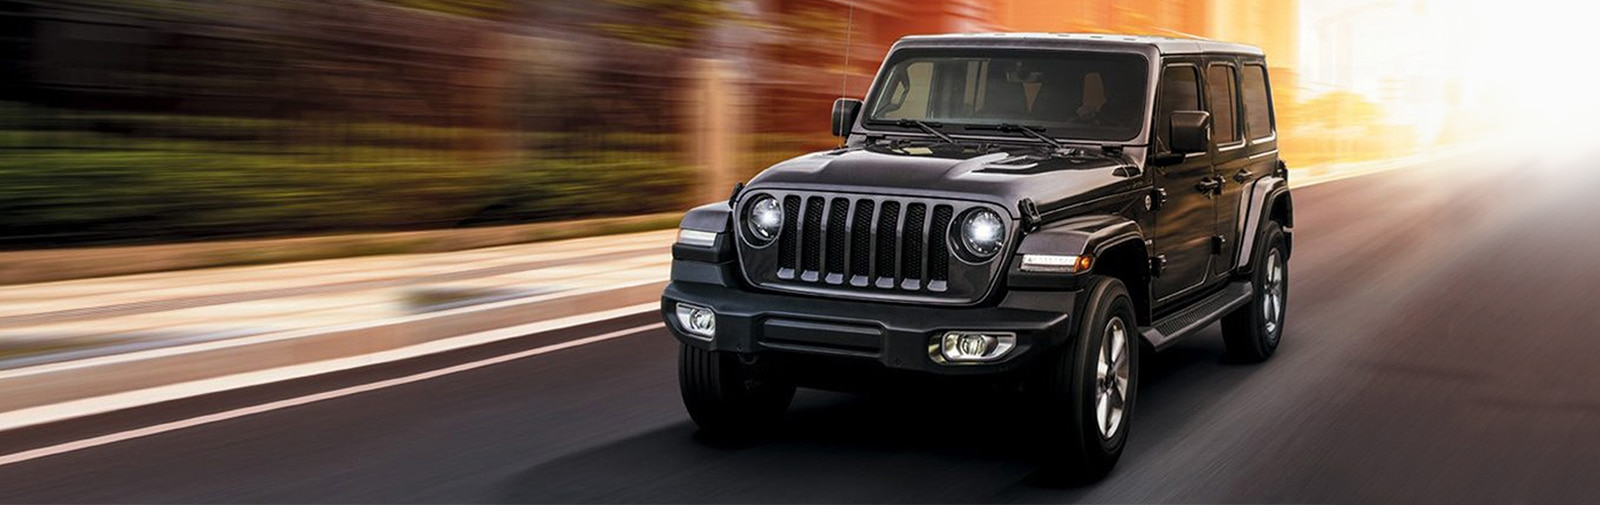 OFFRE BUSINESS: JEEP WRANGLER